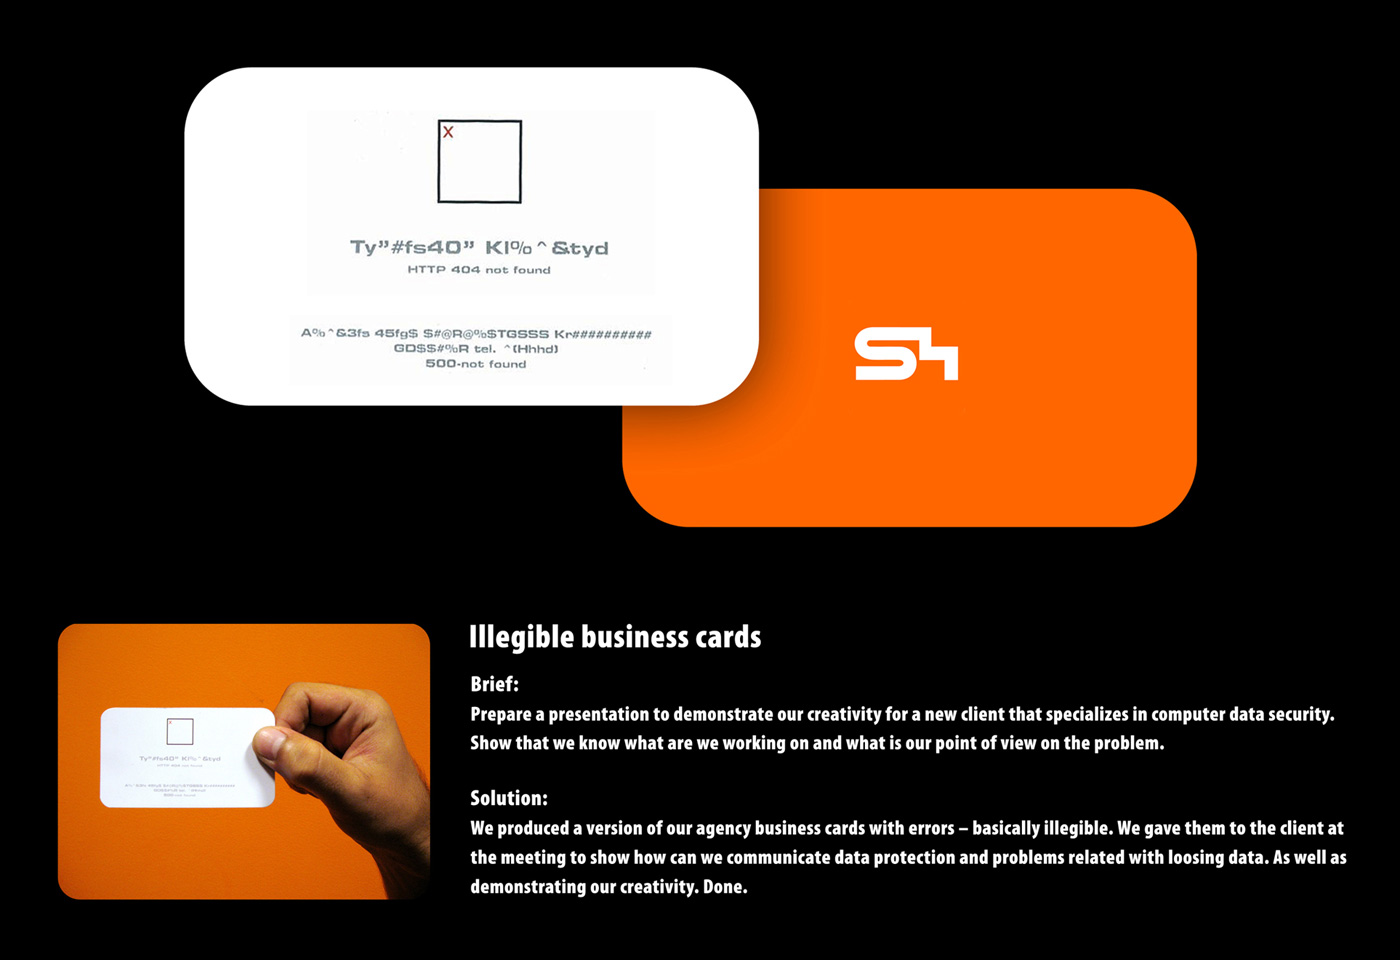 S4 direct advert by s4 illegible business cards ads of the world s4 direct ad illegible business cards colourmoves